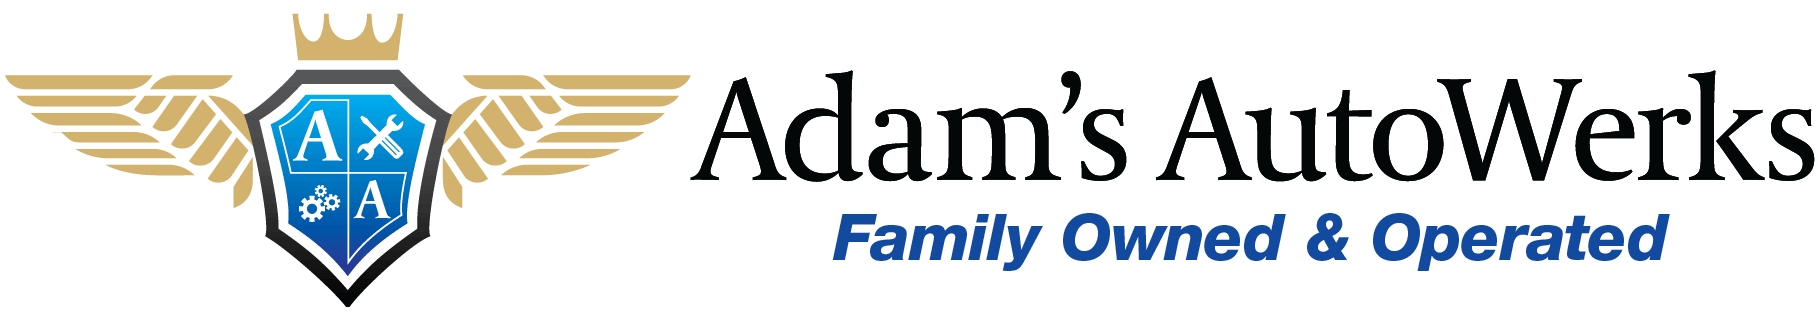 Adams AutoWerks Family Owned and Operated